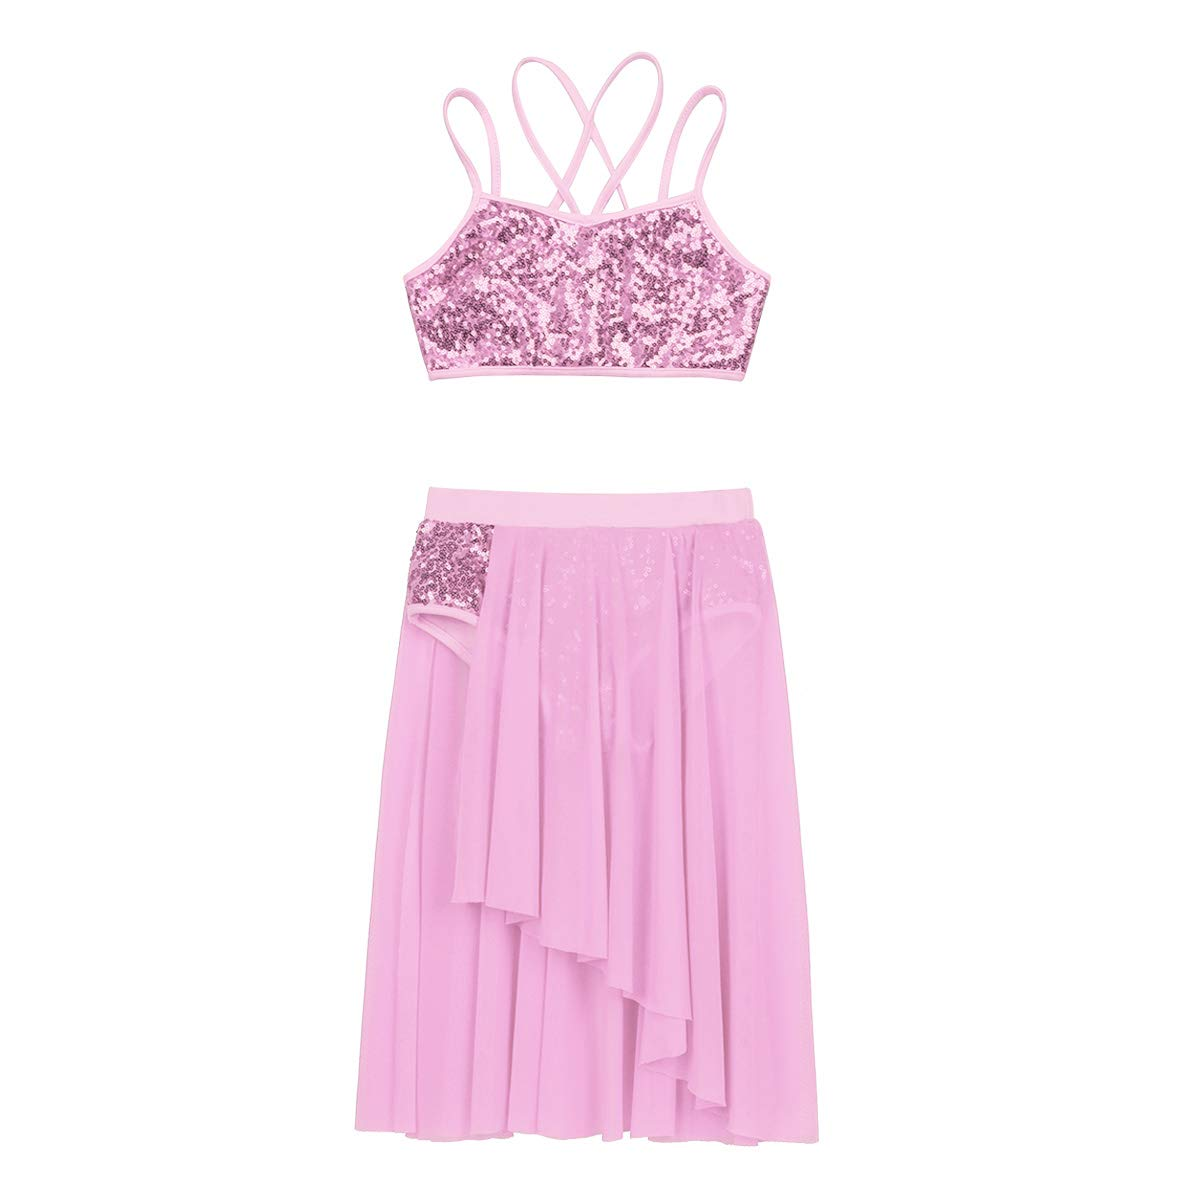 iEFiEL Kids Girls Latin Ballet Lyrical Dance Outfit Sequins Camisole Crop Top with Irregular Tulle Skirt Two-Pieces Set